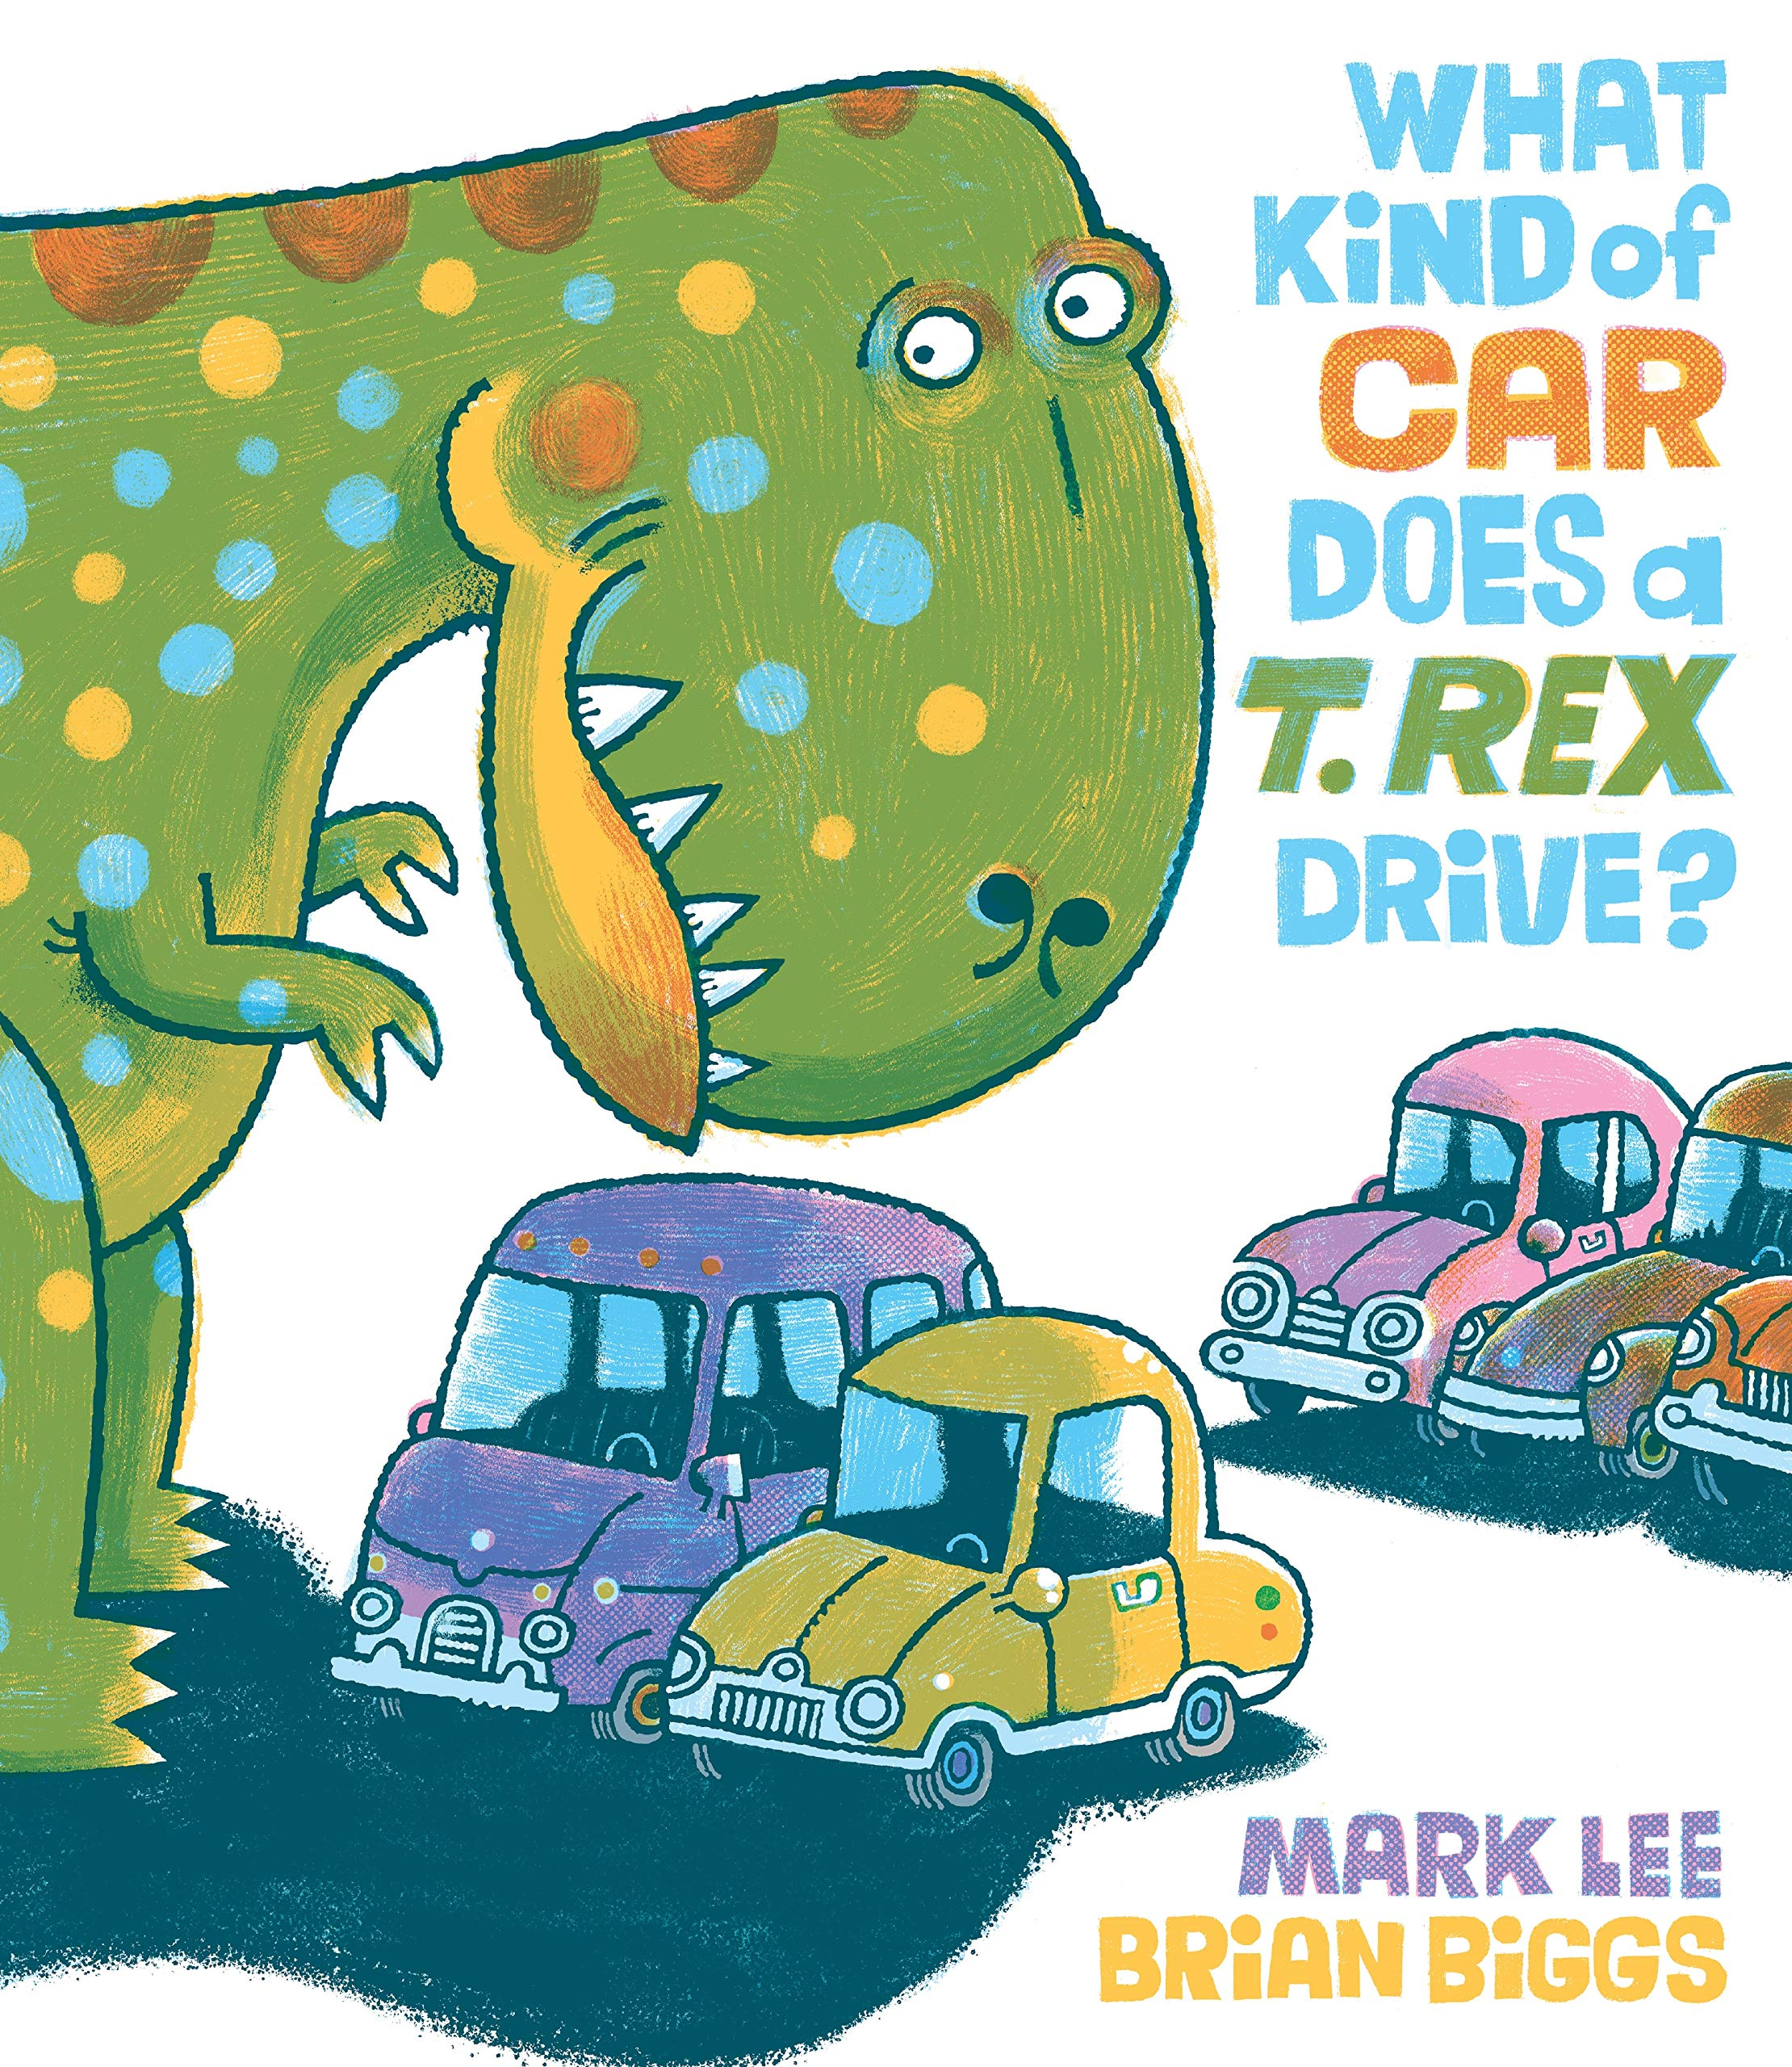 what kind of car does a trex drive